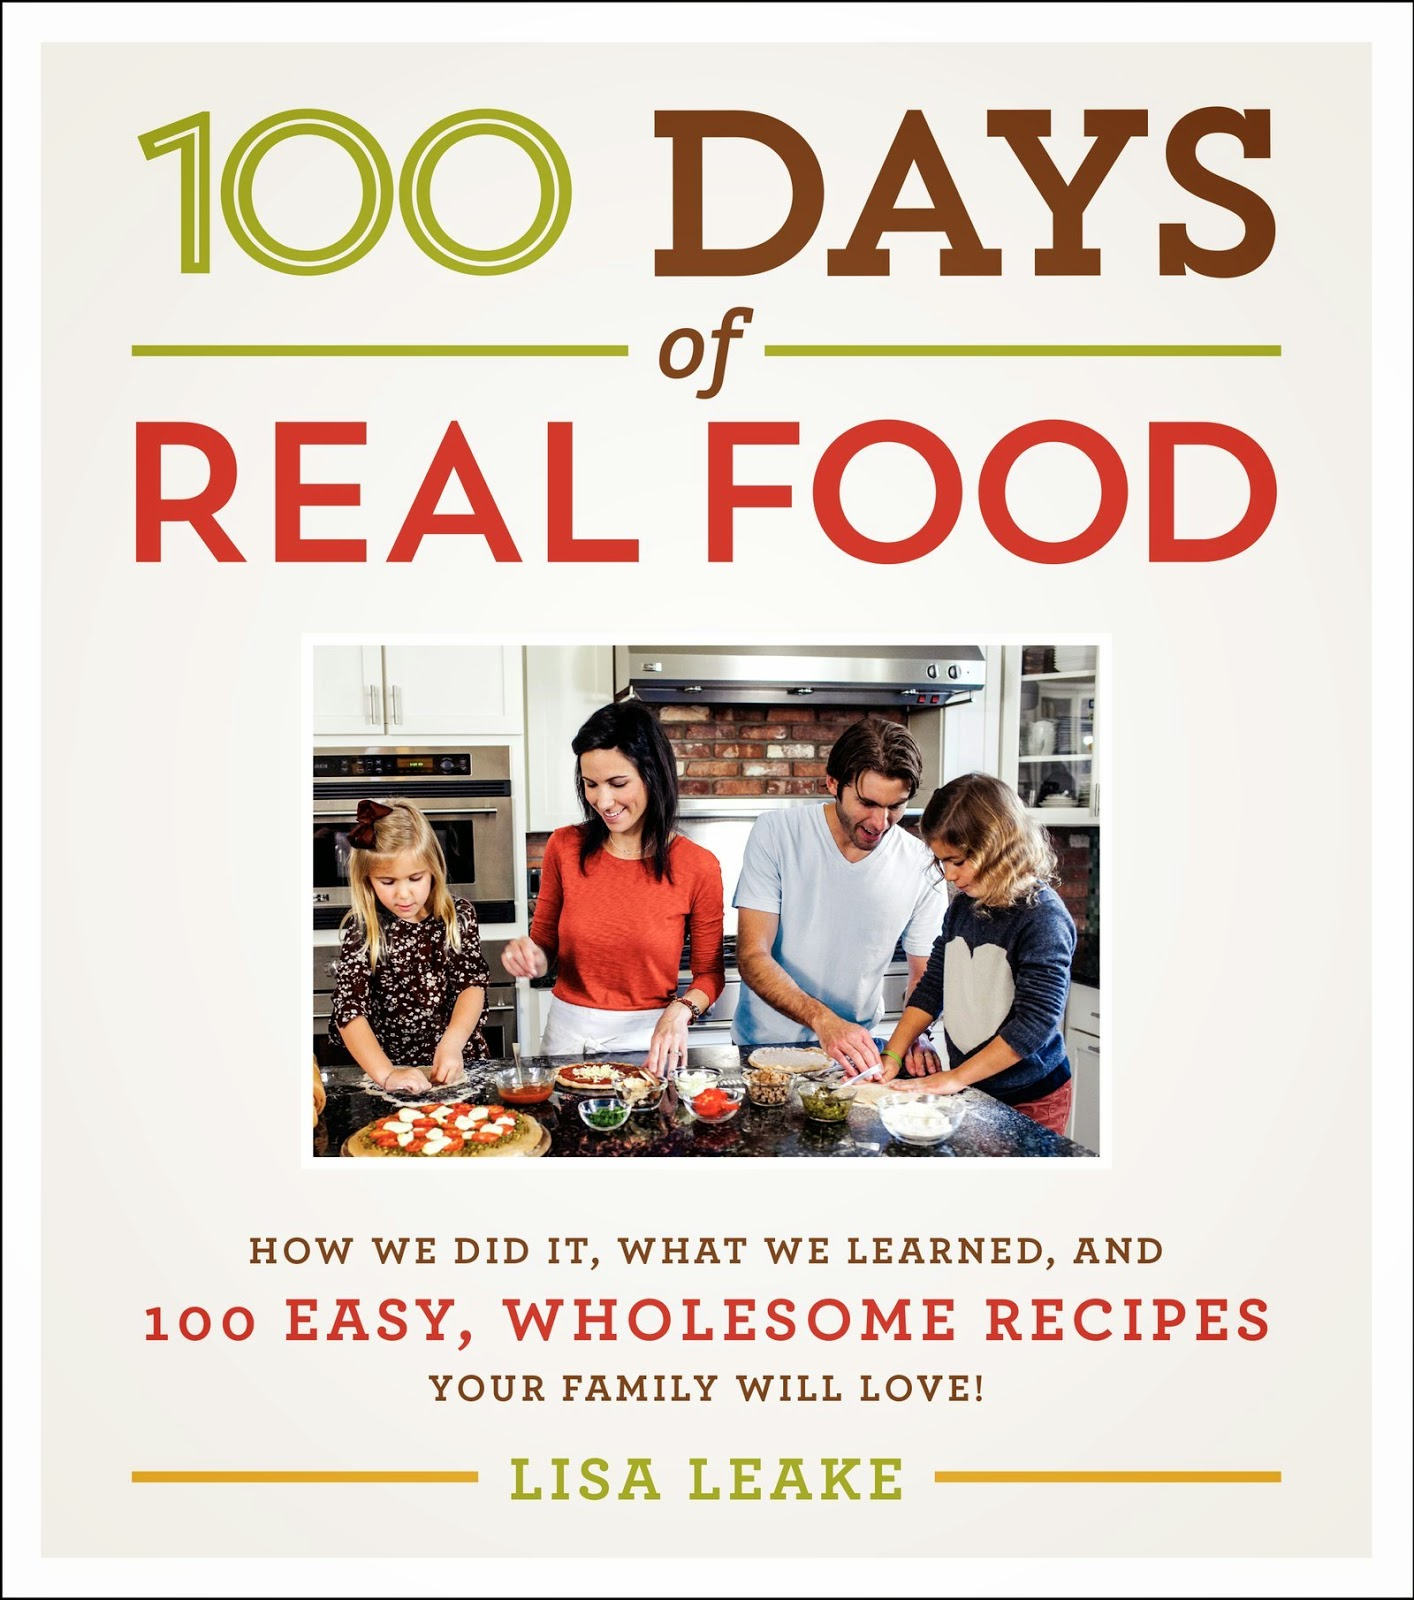 100 Days of Real Food: : How We Did It, What We Learned, and 100 Easy, Wholesome Recipes Your Family Will Love